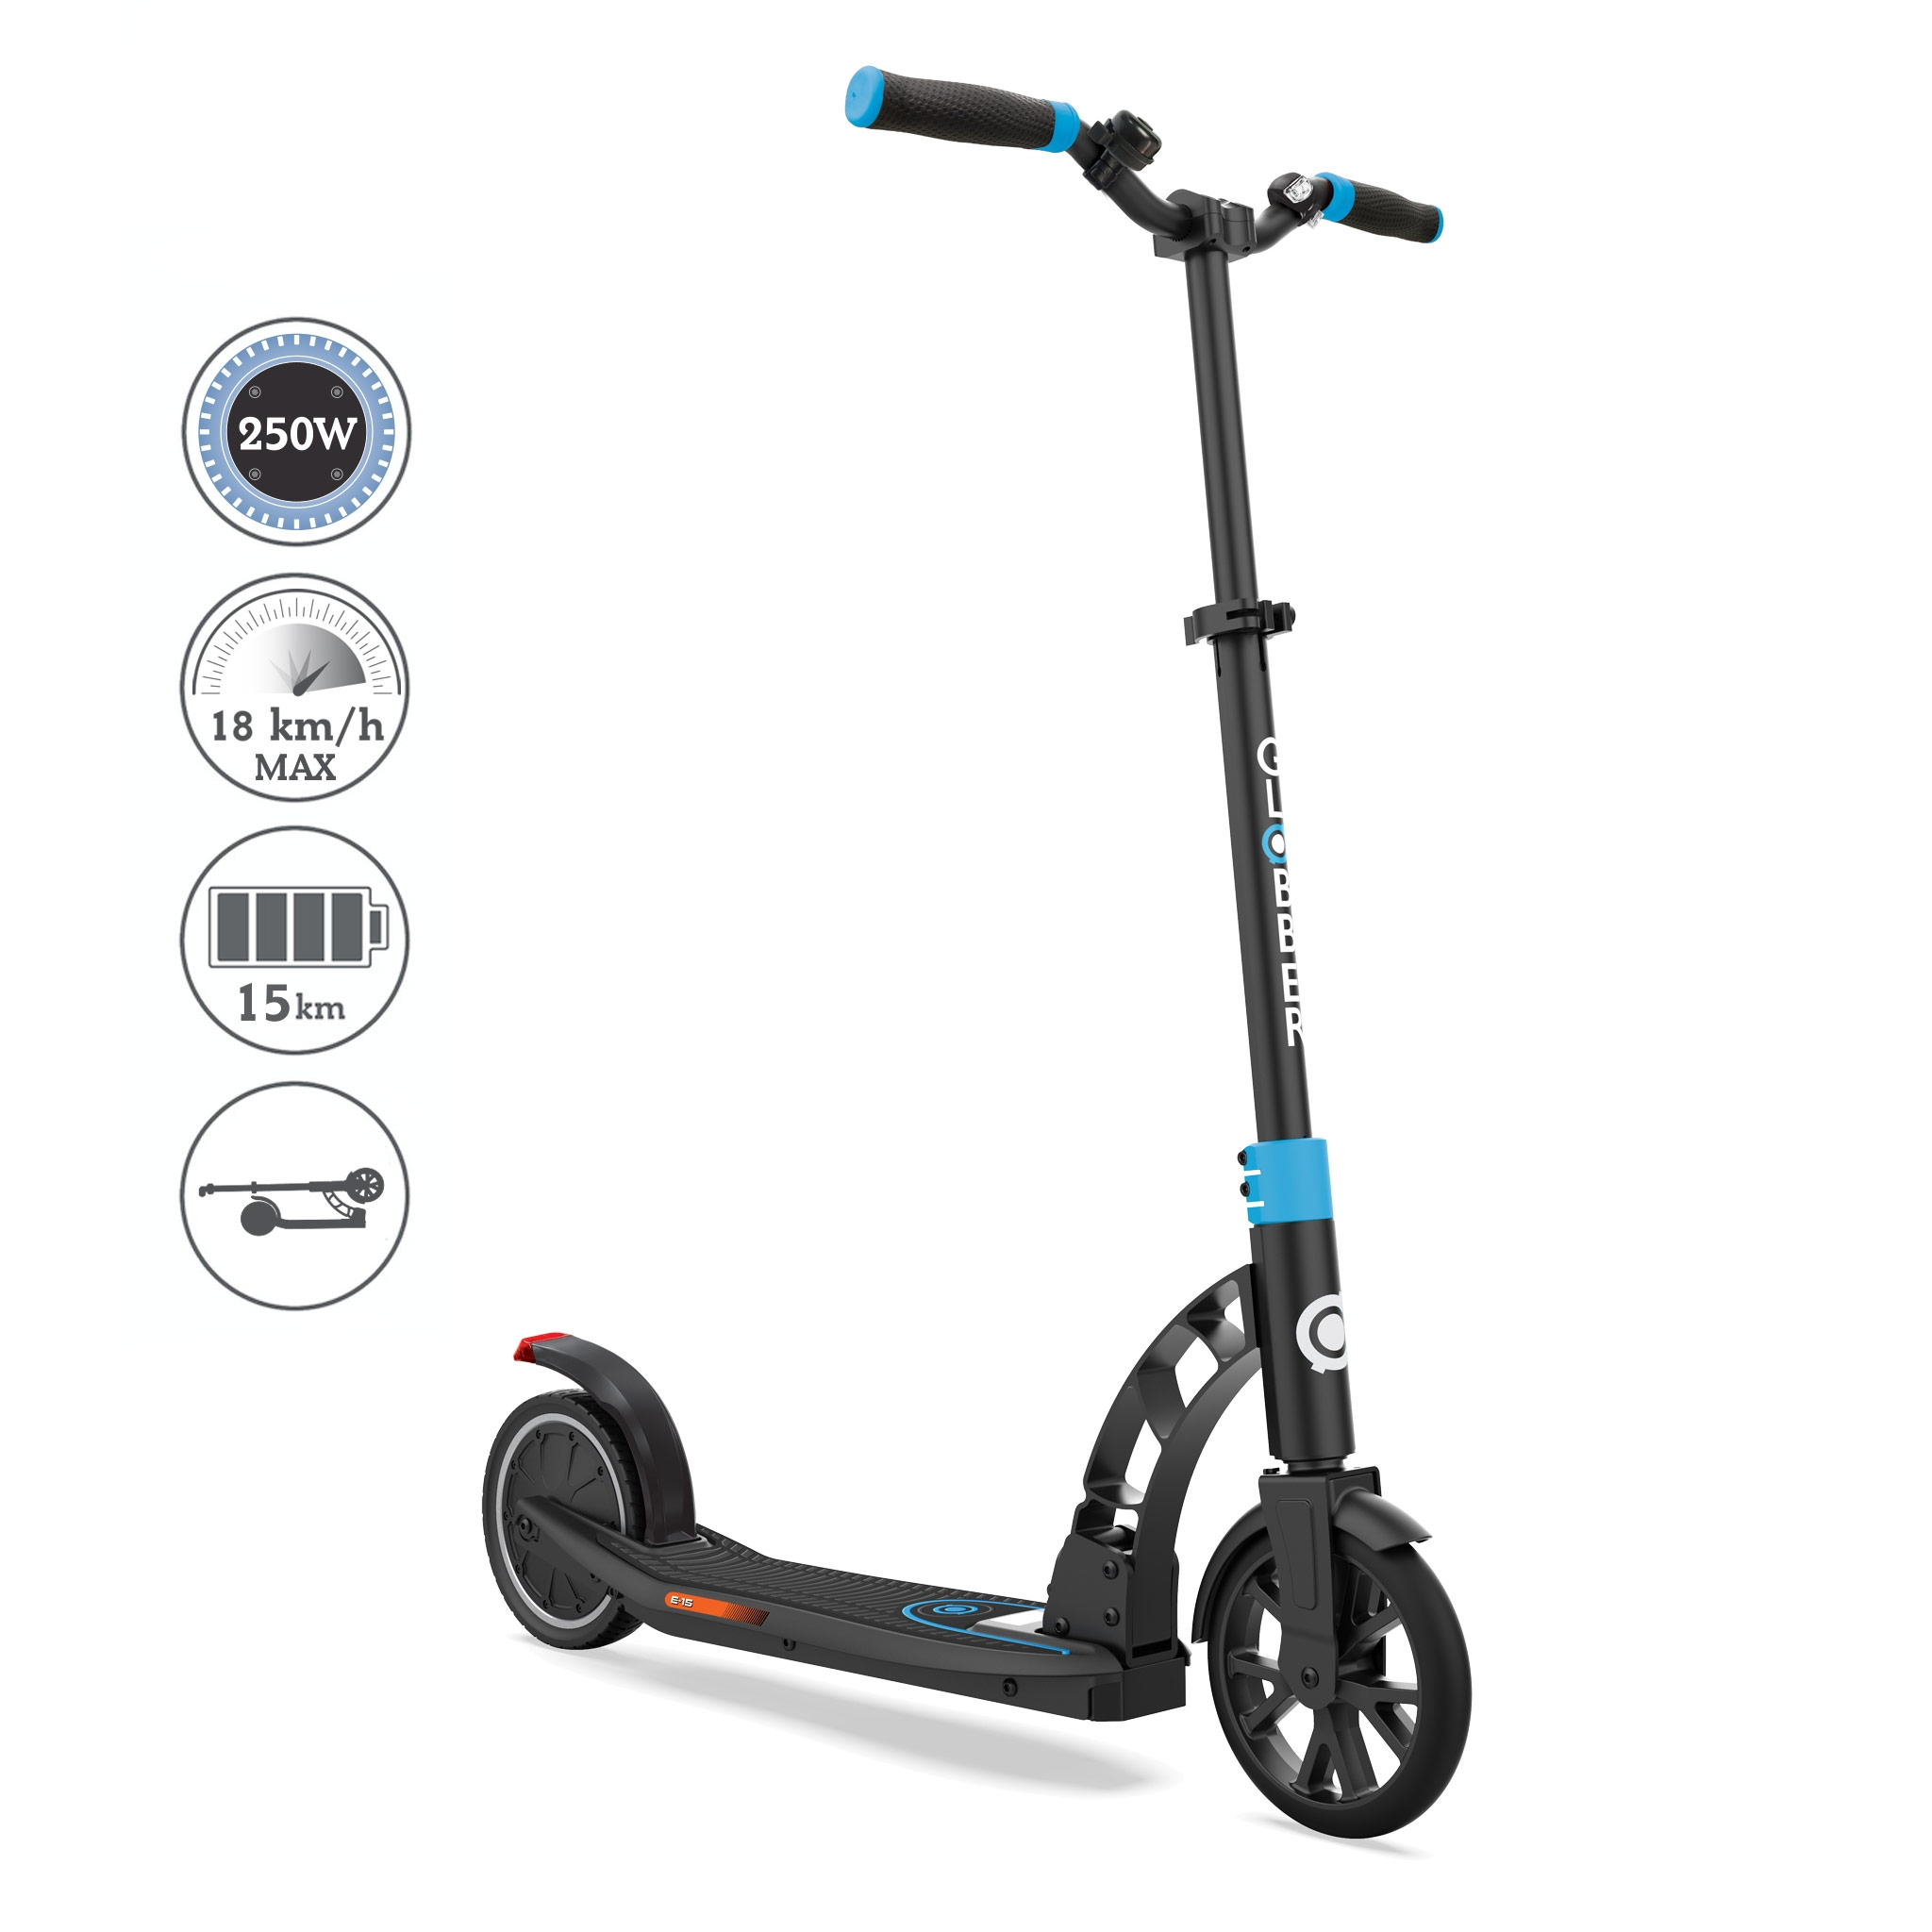 Globber-ONE-K-E-MOTION-15-foldable-electric-scooter-for-teens-and-young-adults-aged-14+-sky-blue 0